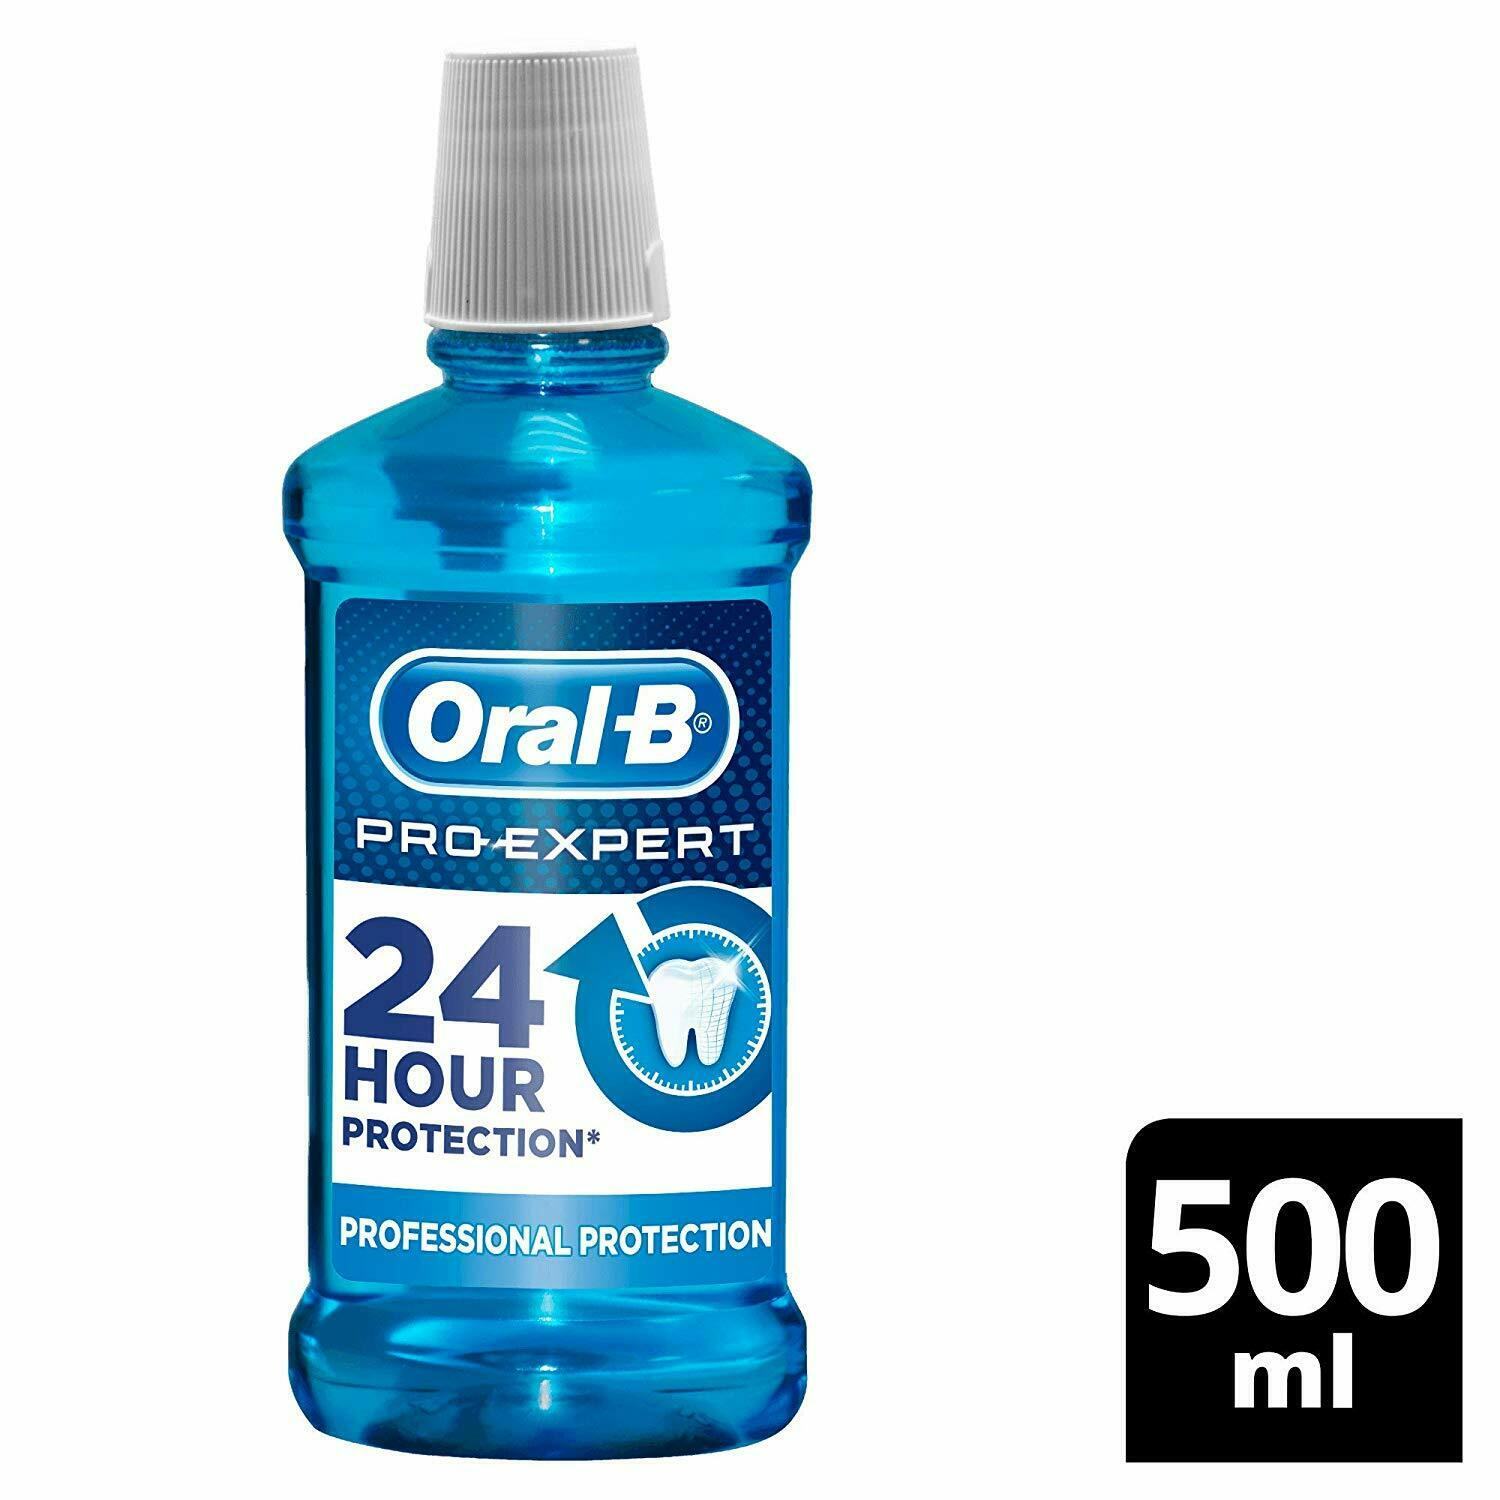 Wholesale oral-b pro-expert professional protection mouthwash, 500 ml